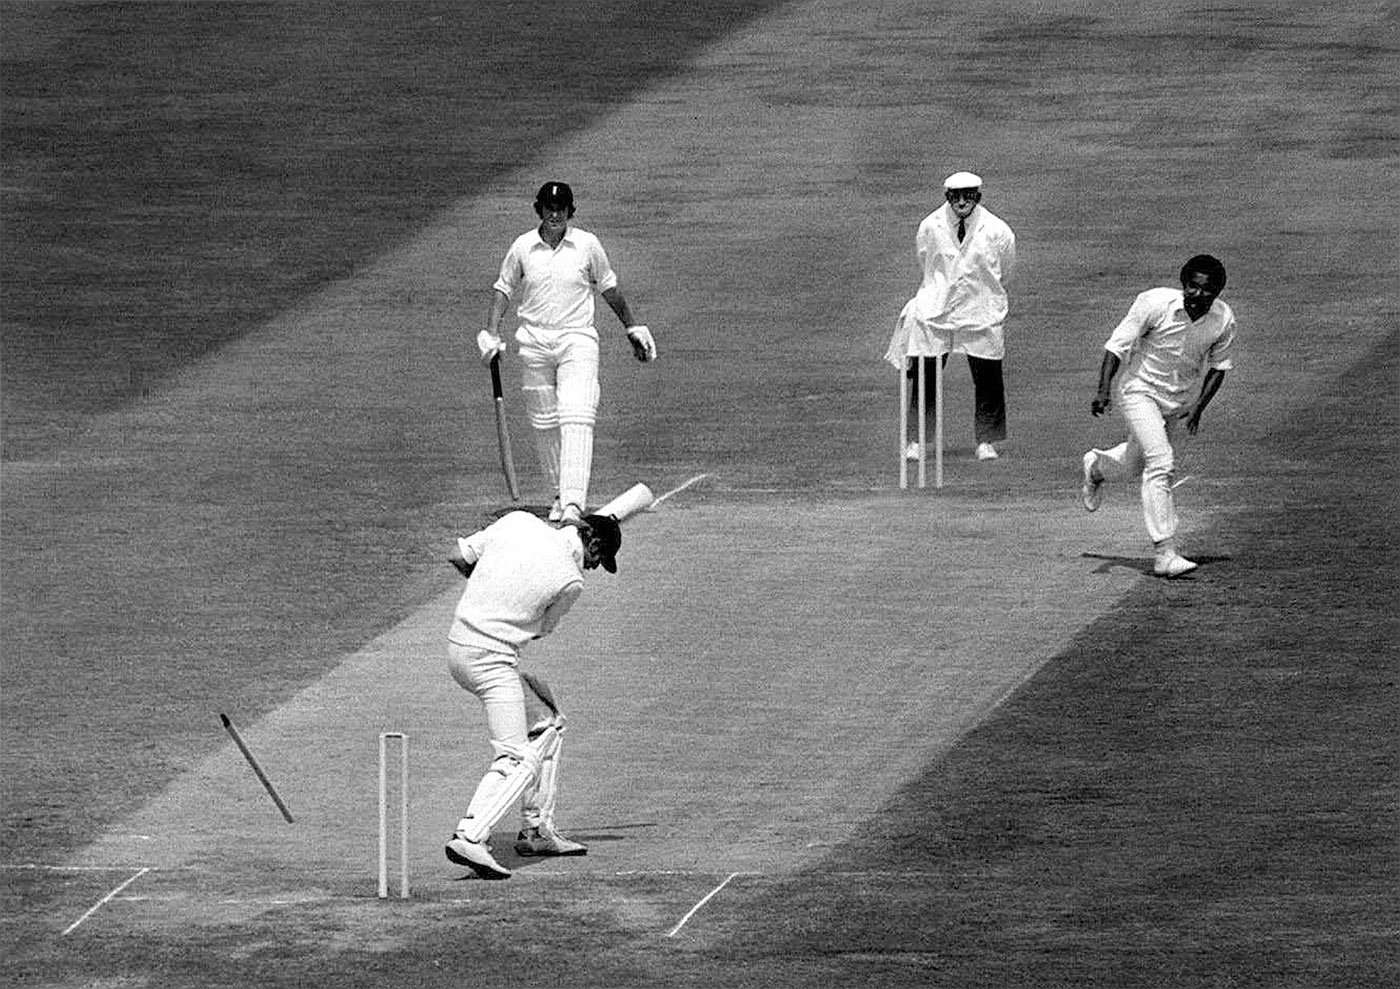 Tony Greig is bowled for a duck by Andy Roberts at Trent Bridge